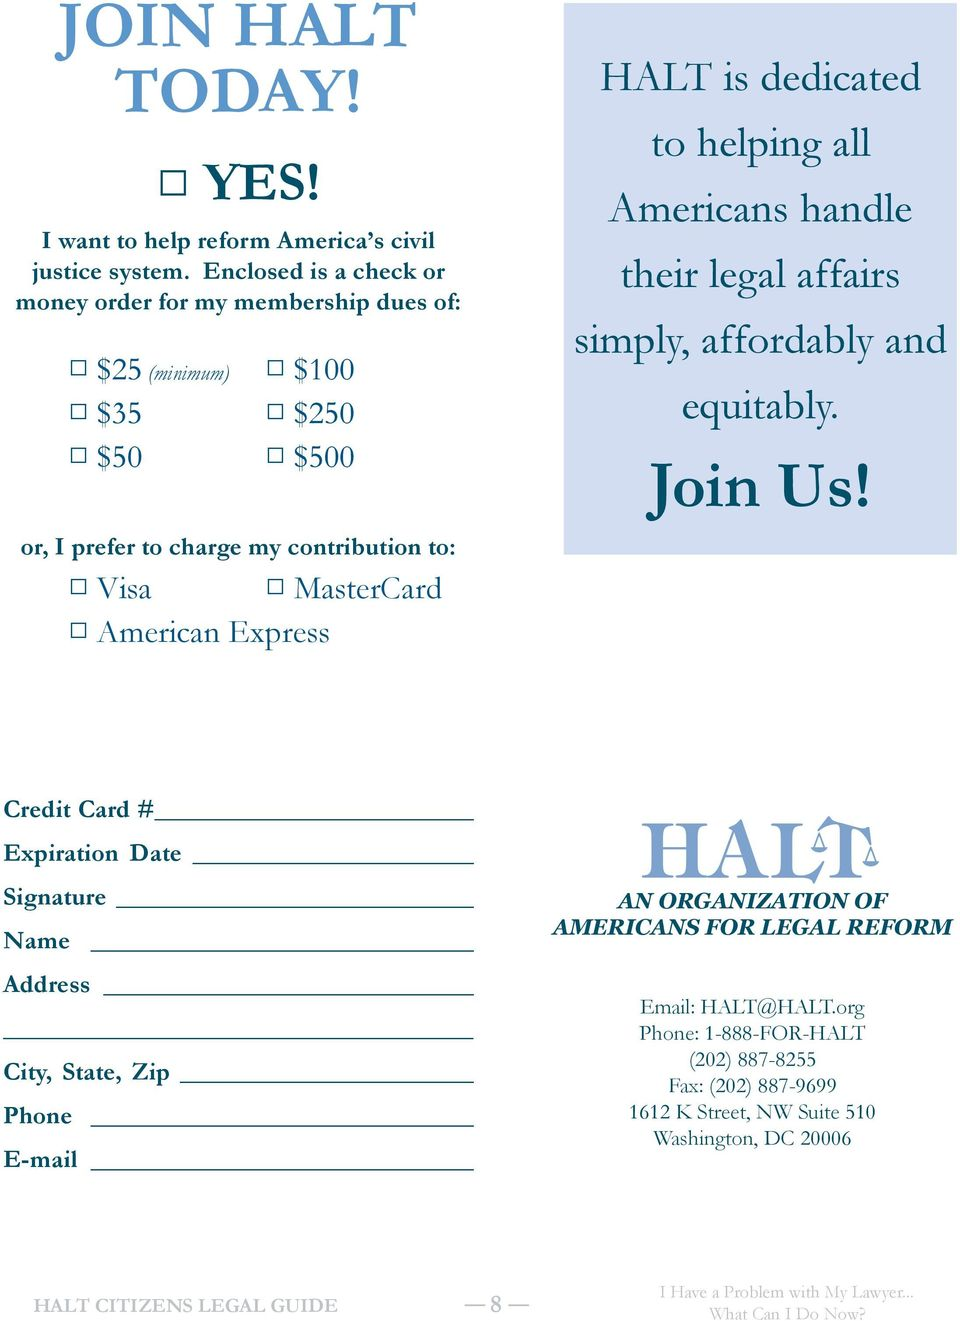 American Express HALT is dedicated to helping all Americans handle their legal affairs simply, affordably and equitably. Join Us!